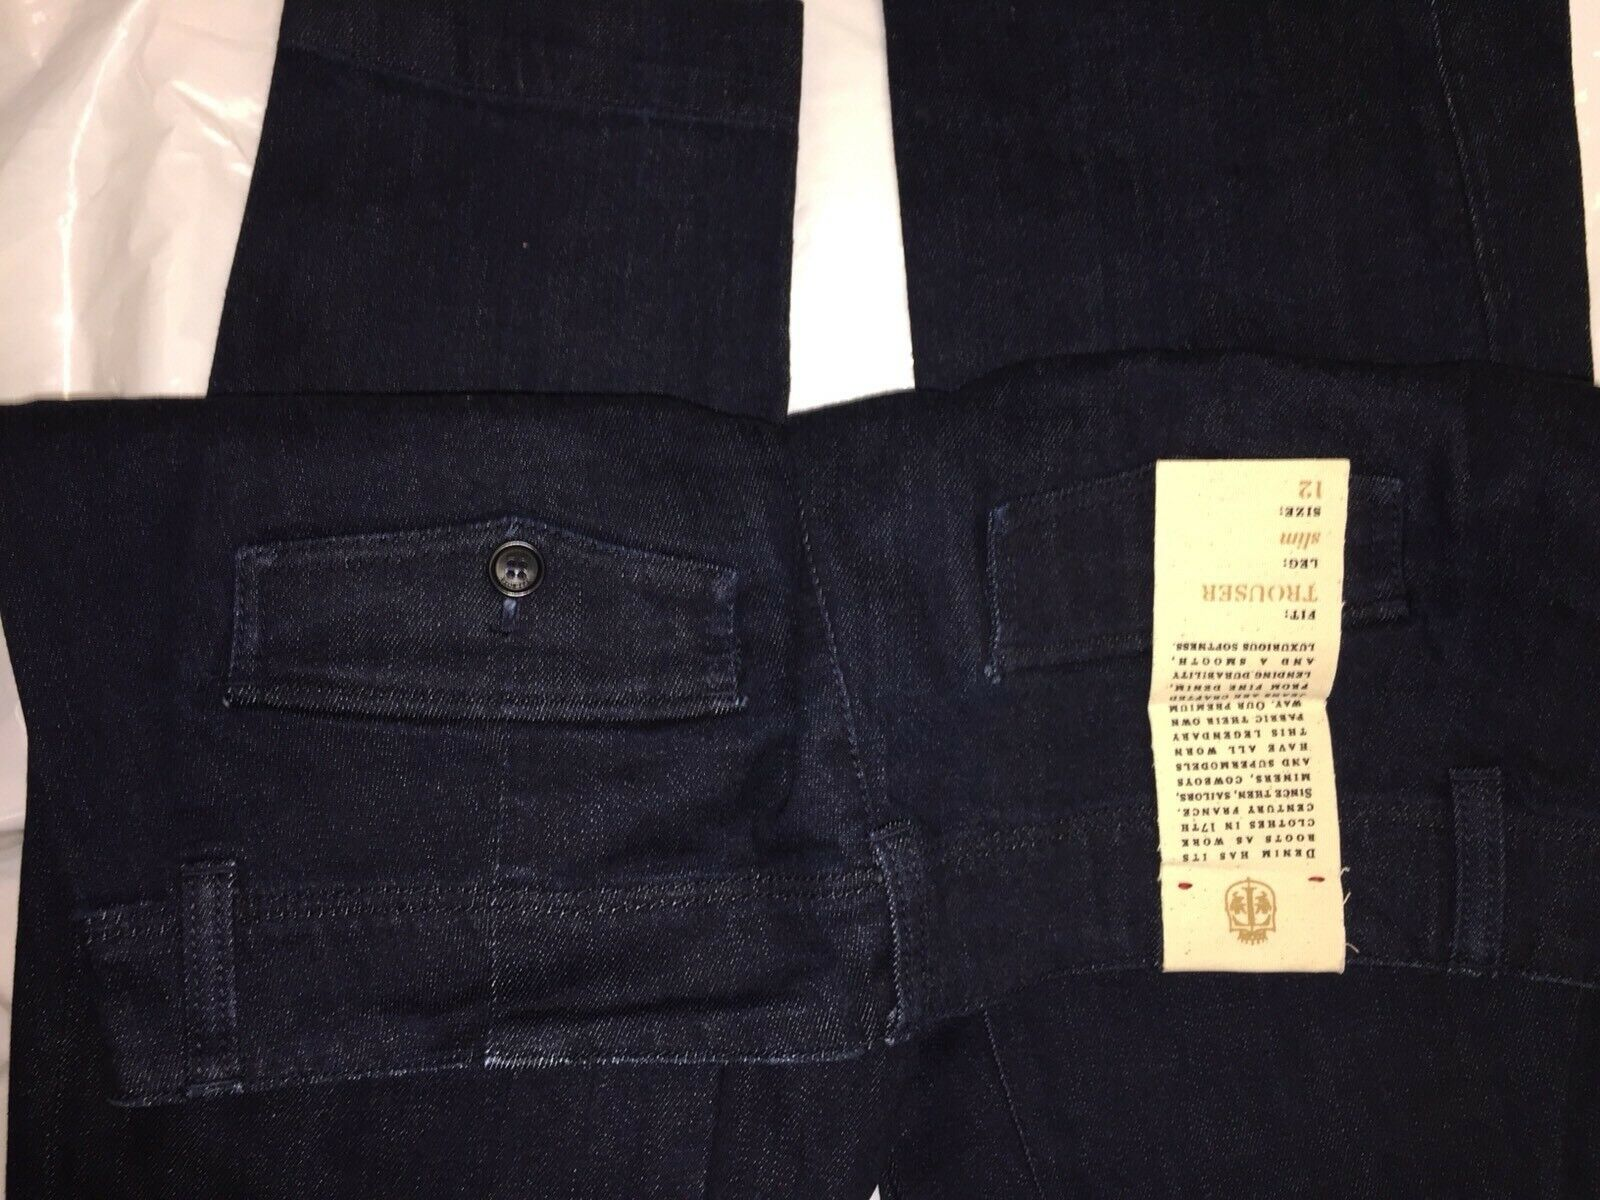 88 NWT   TALBOTS Slim Trouser DARK bluee DENIM Pants Jeans sz 12 31